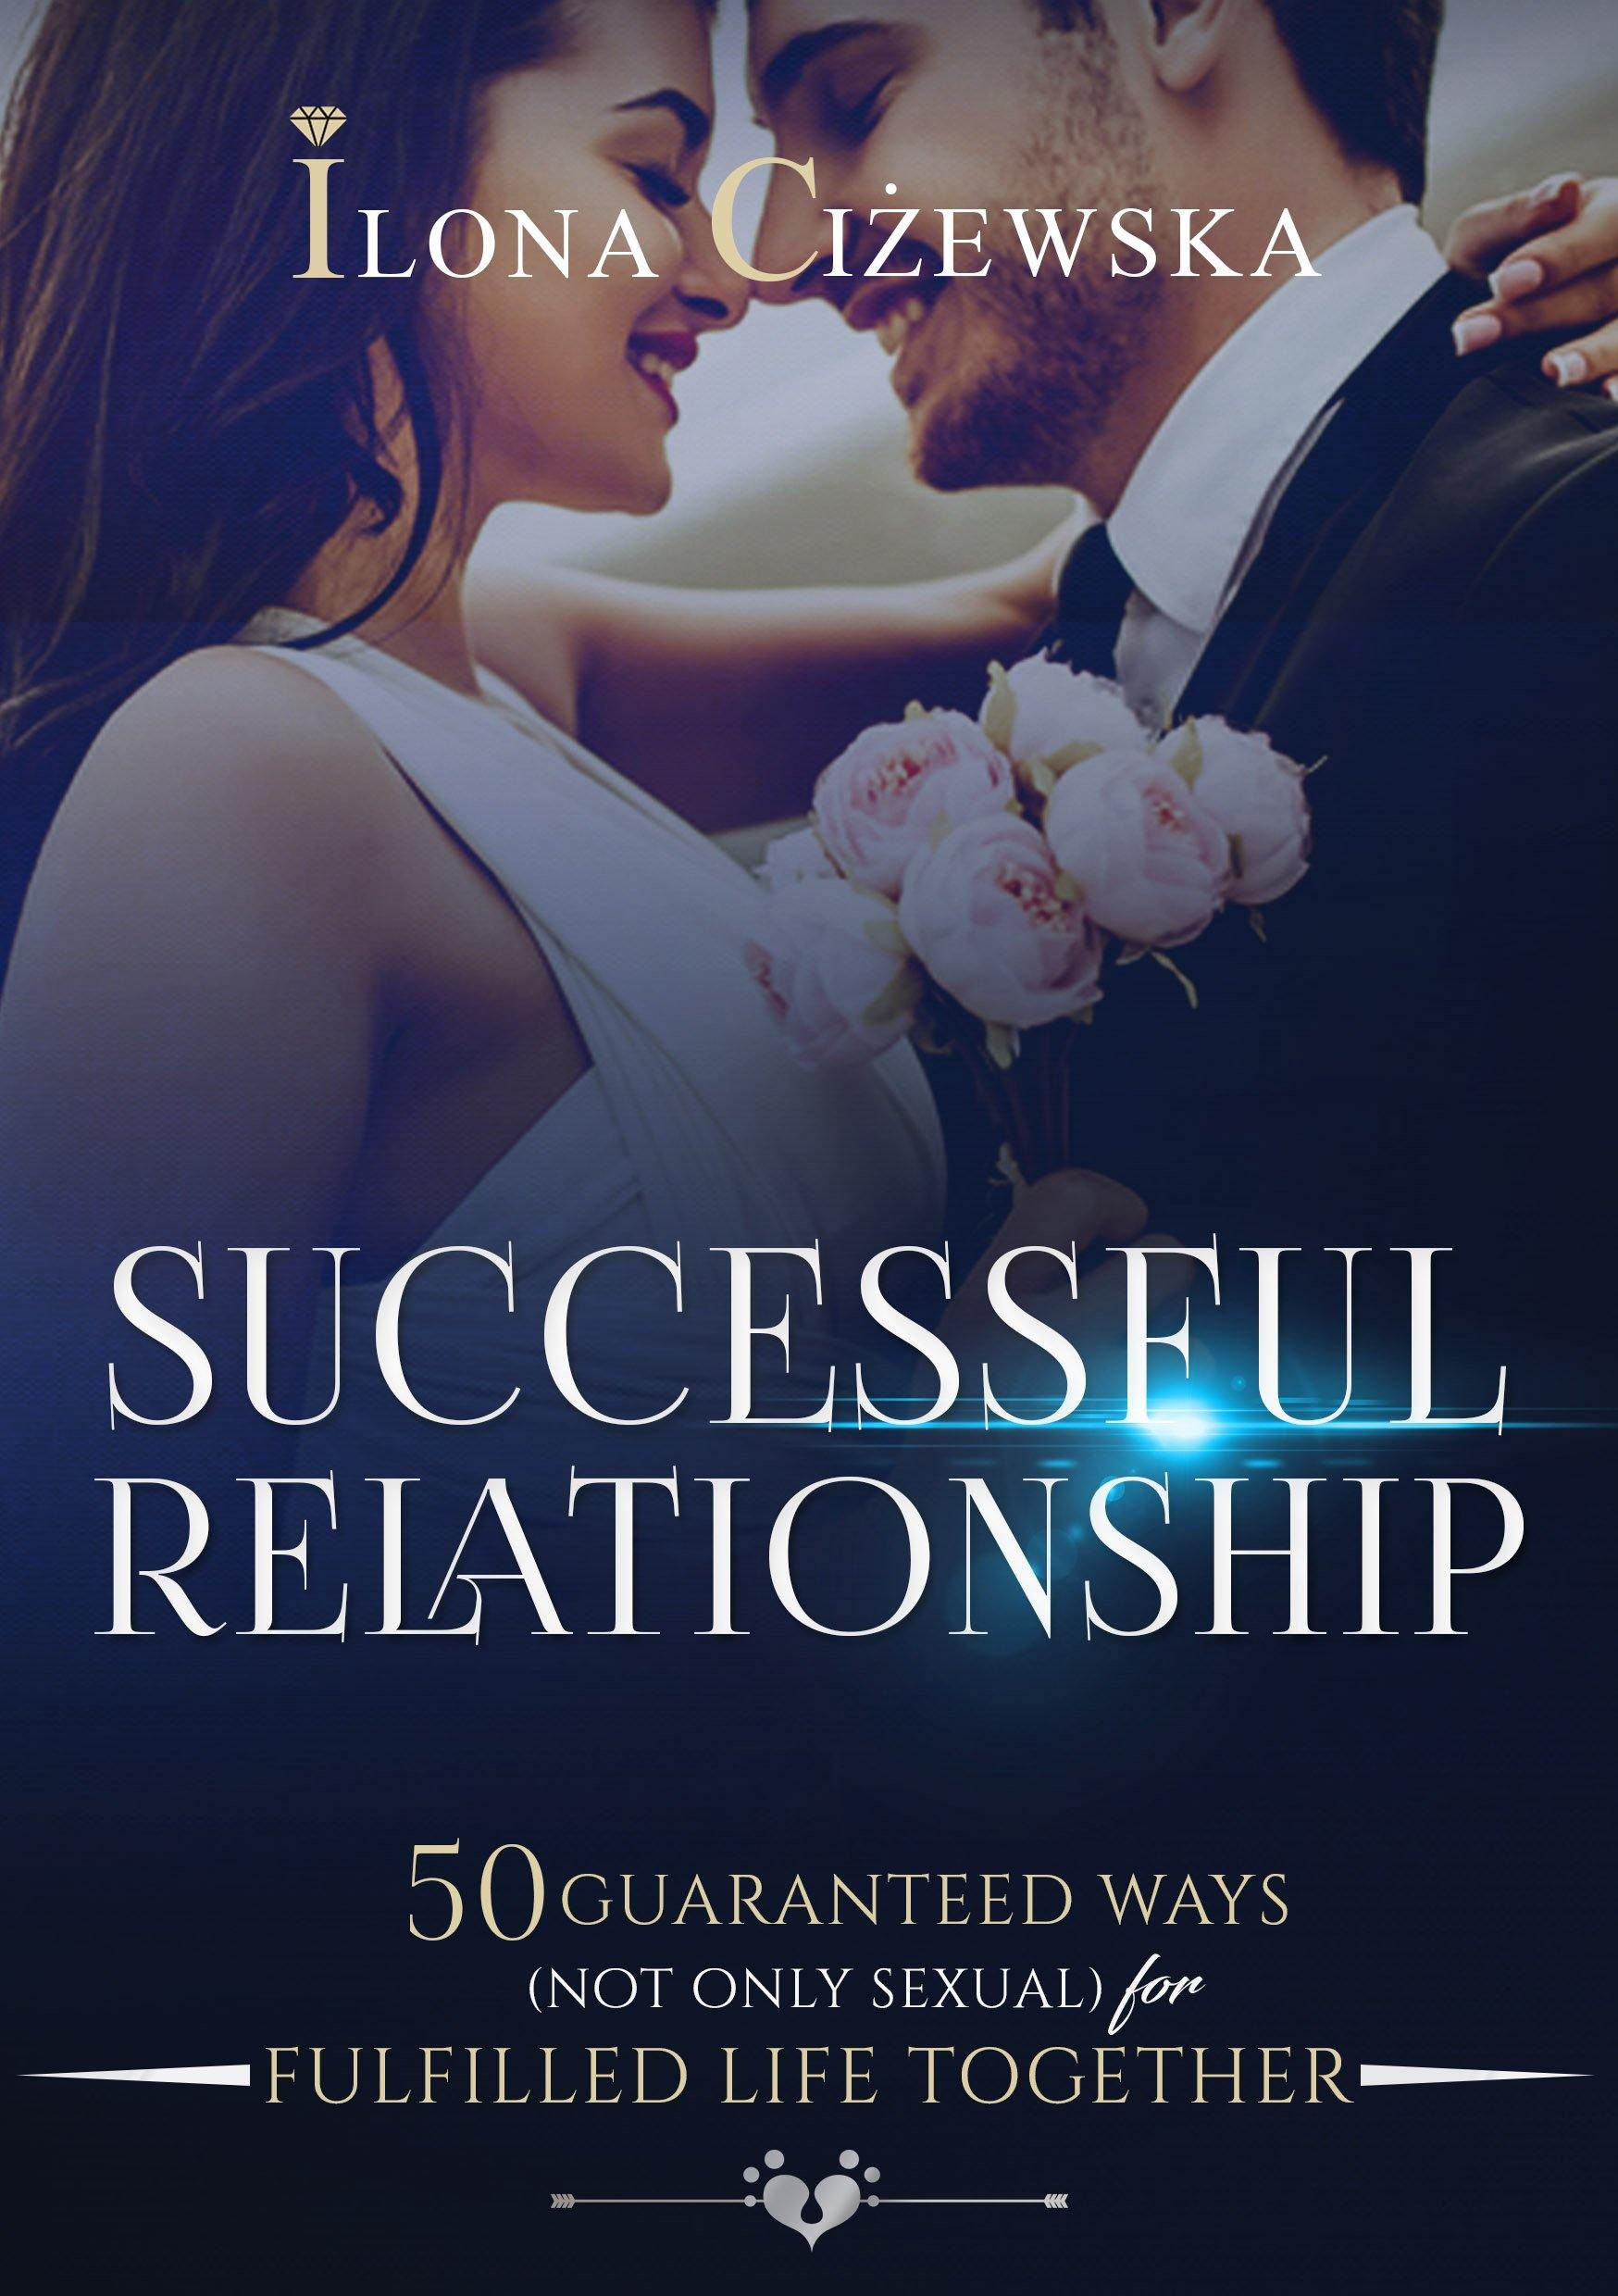 Ebook-Successful-Relationship-by-Ilona-Cizewska [icinstyle]